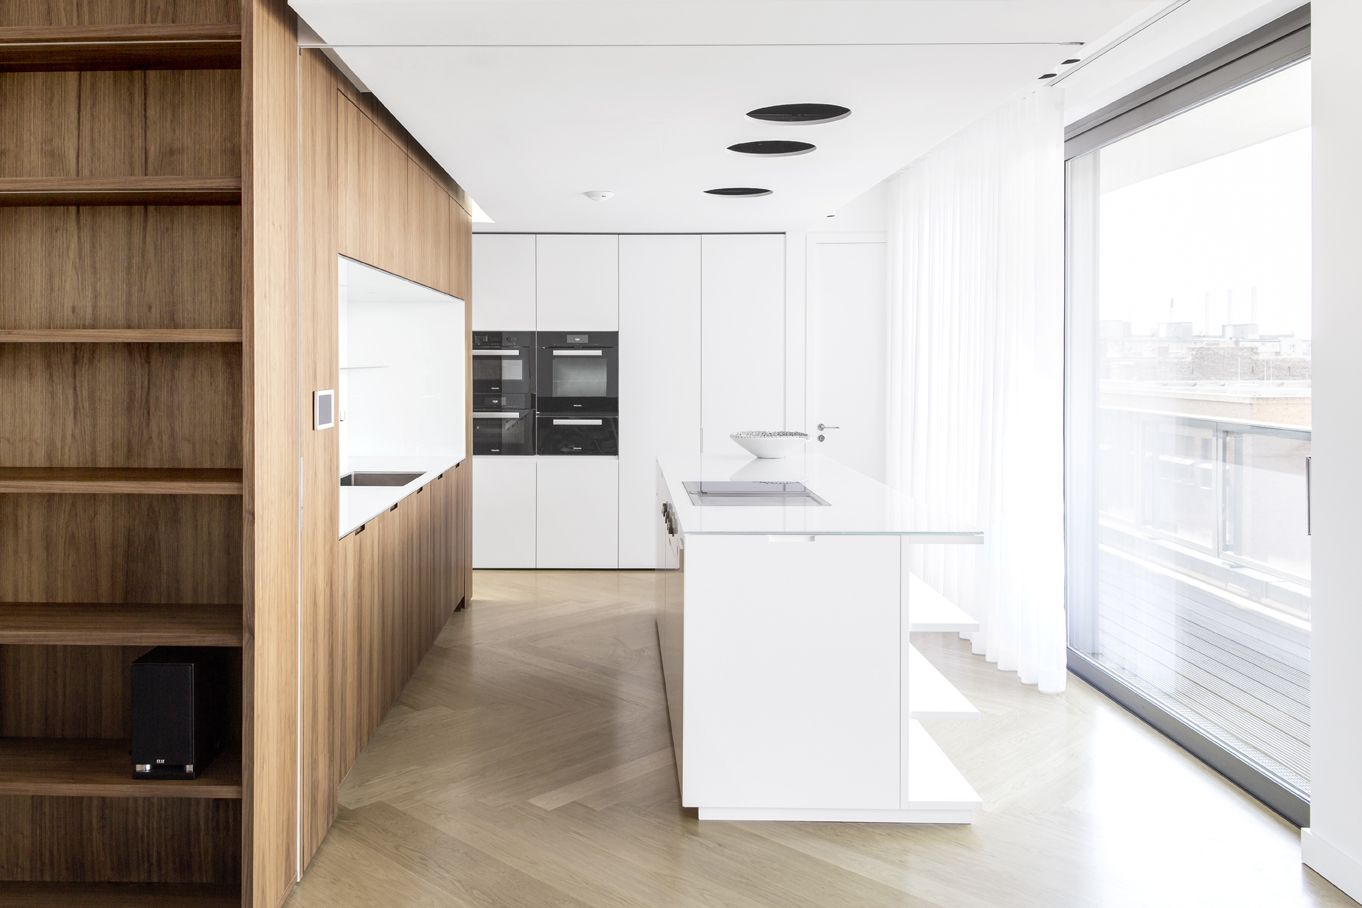 berlin - penthouse - kitchen - white -built-in - cabinet - drawer ...